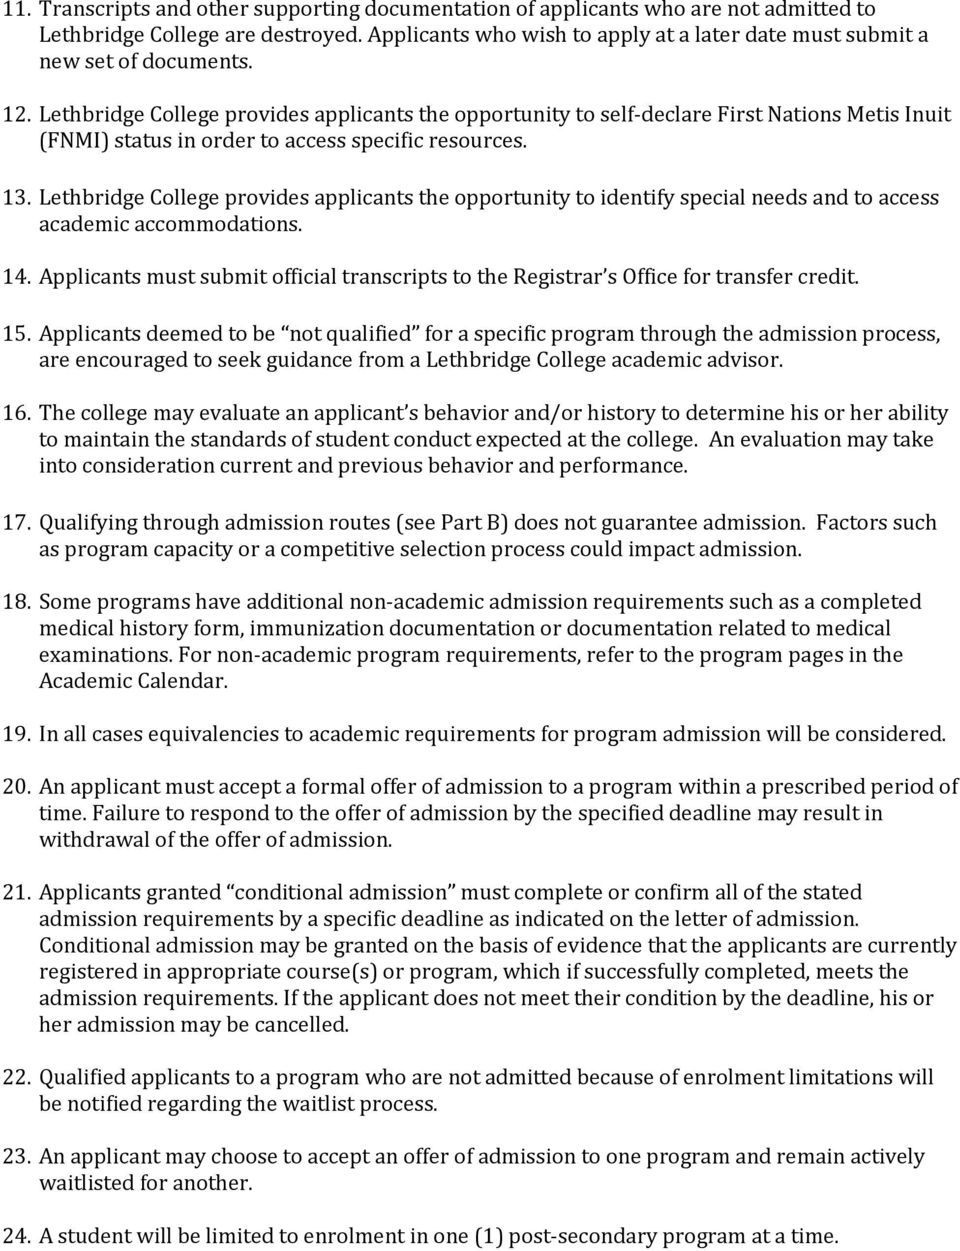 Lethbridge College provides applicants the opportunity to self-declare First Nations Metis Inuit (FNMI) status in order to access specific resources. 13.